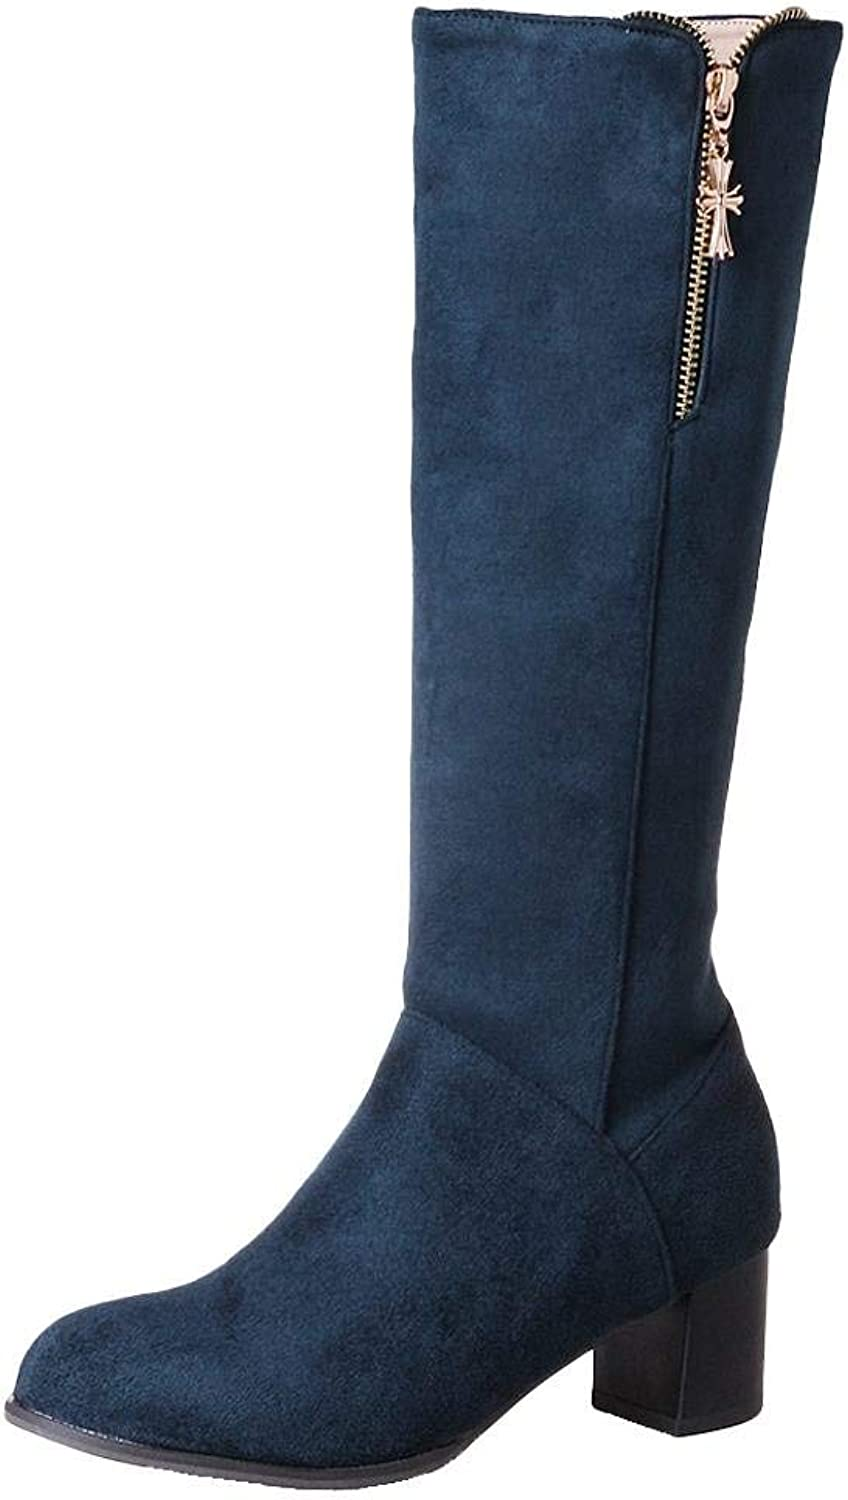 Gcanwea Women's Fashion Knee High Zipper Chunky Mid Heel Boots Comfortable Round Toe Rubber Sole Height Increase Casual Winter Suede Warm bluee 4.5 M US Boots